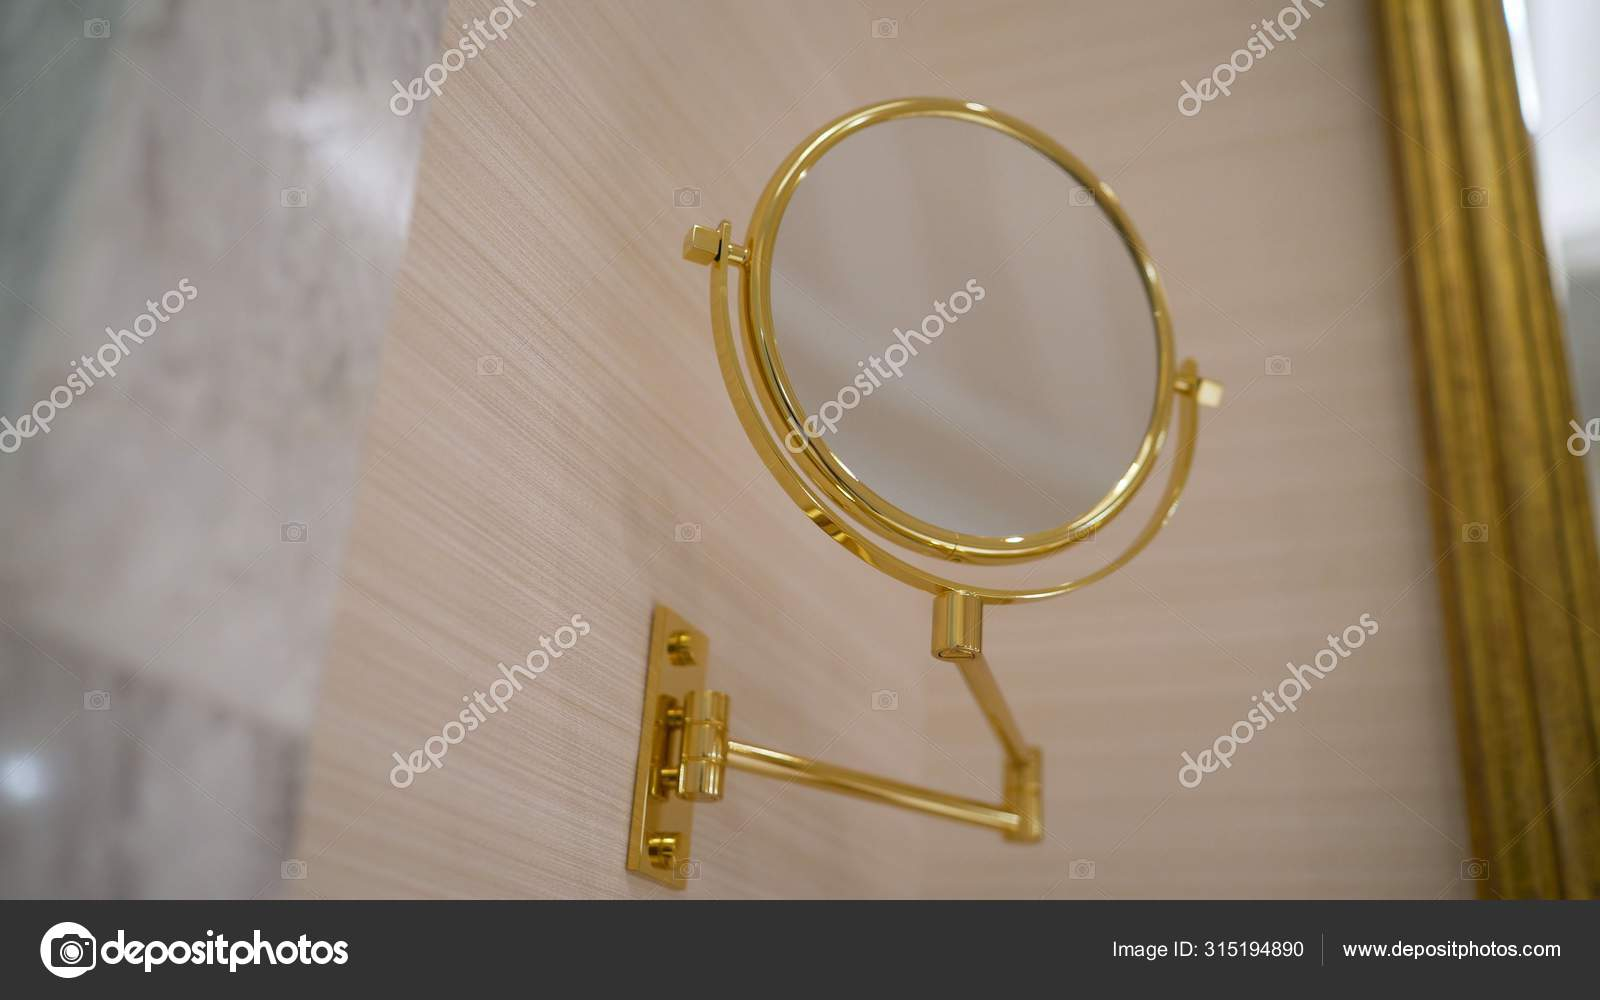 New Bathroom With Pattern Wallpaper Sparkle Floor Round Mirror With Decorative Golden Frame And Black Basin A Round Golden Mirror In The Bathroom Stock Photo C Rusrussid2 315194890